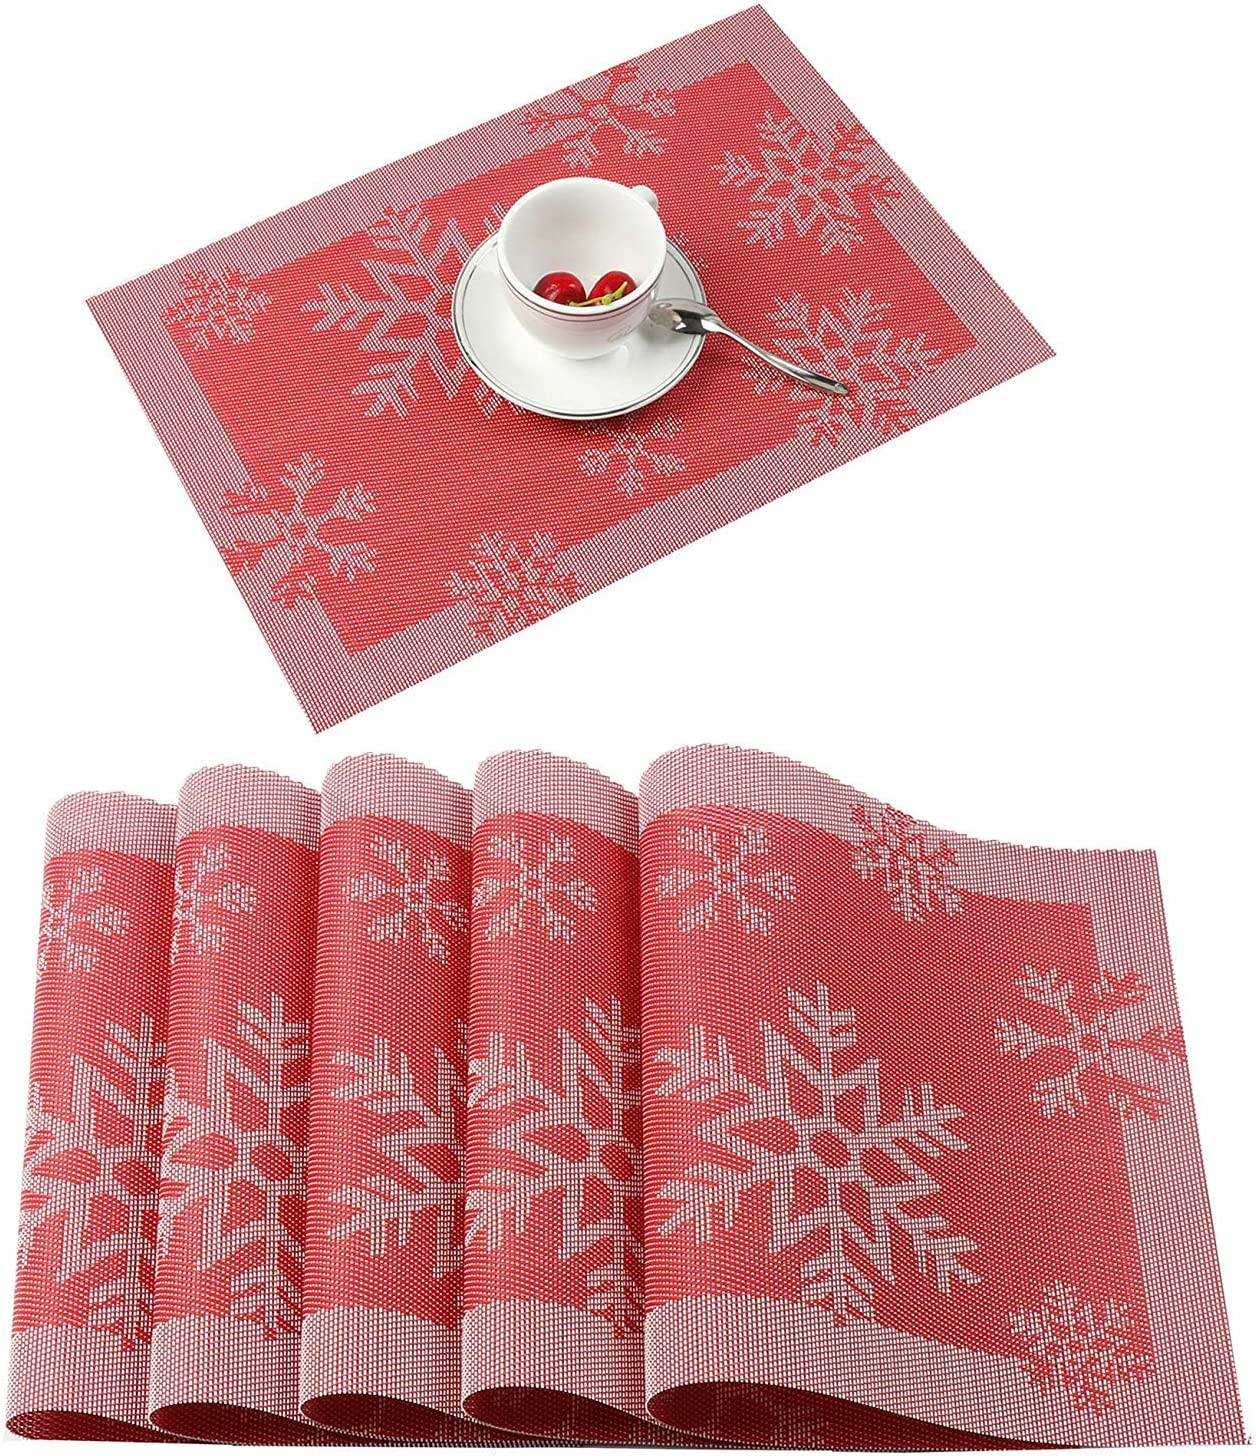 Aonewoe Christmas Placemats Set of 6 Heat Resistant Waterproof Snowflake PVC Table Mats for Dinner Easy to Wipe Clean(Red)